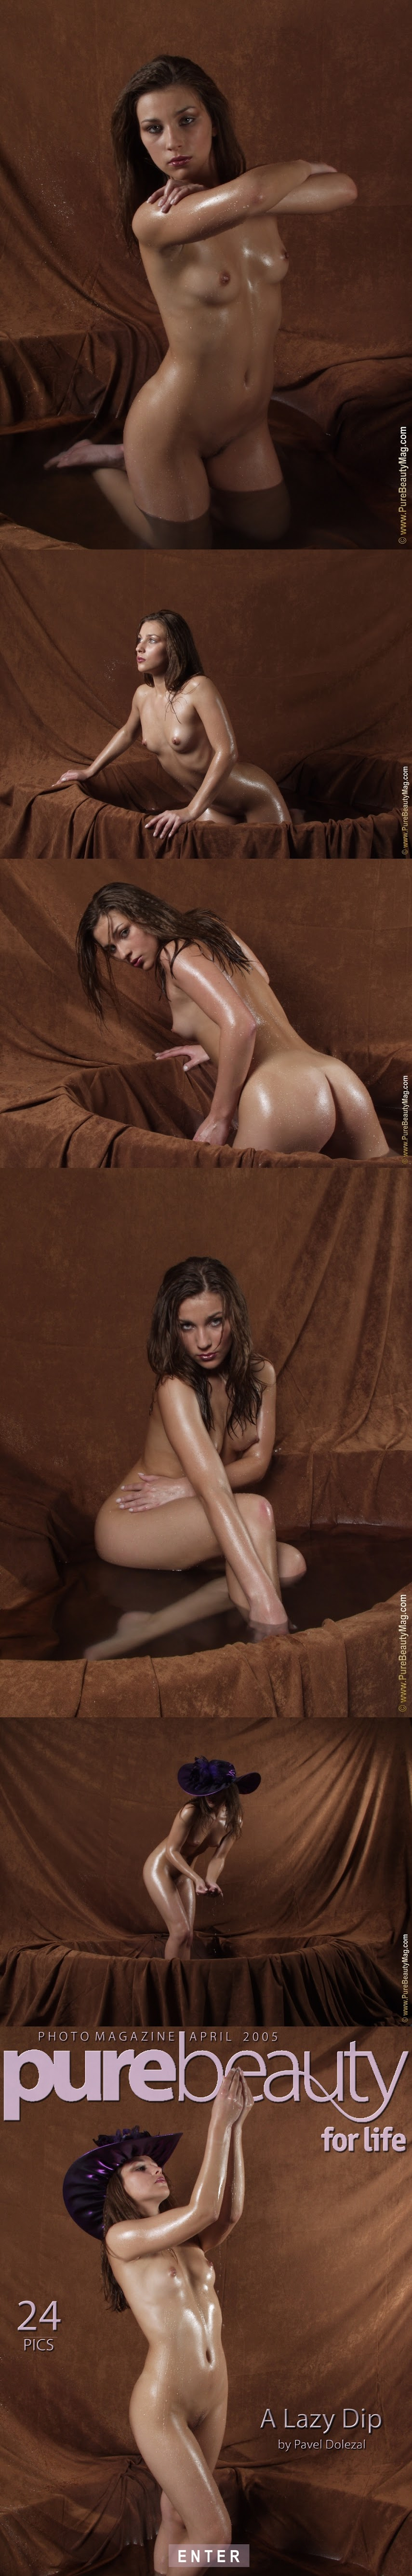 PureBeautyMag PBM  - 2005-04-01 -  s43909 - Kristyna - A Lazy Dip - 2560pxReal Street Angels